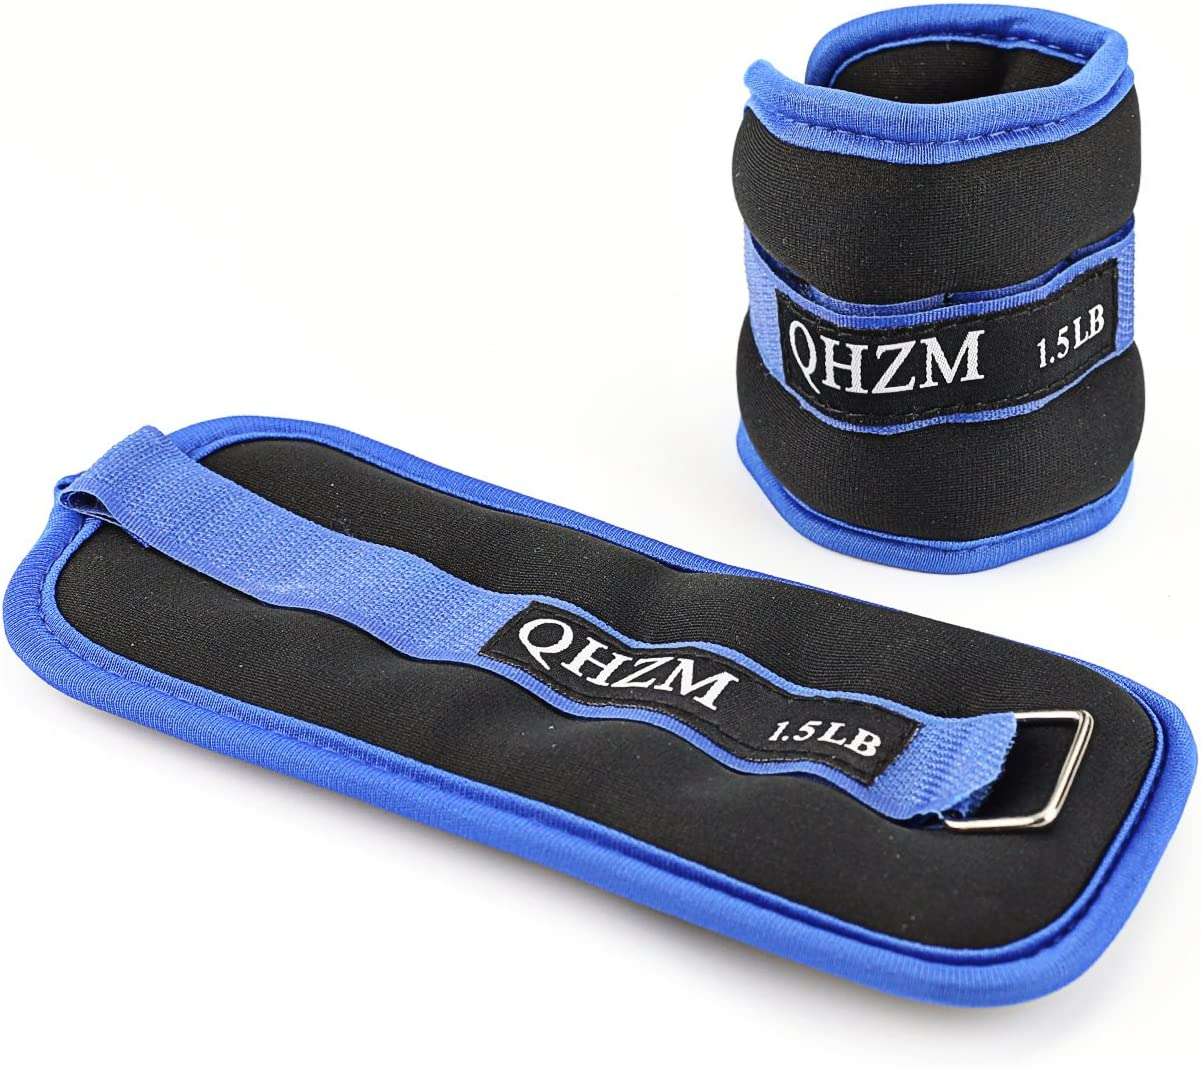 FFFFFFT Adjustable Ankle Weights for Women and Men, Leg Wrist Thigh Exercise Weight for Gym Walking, Jogging, Aerobics Recovery Training Fitness Protection